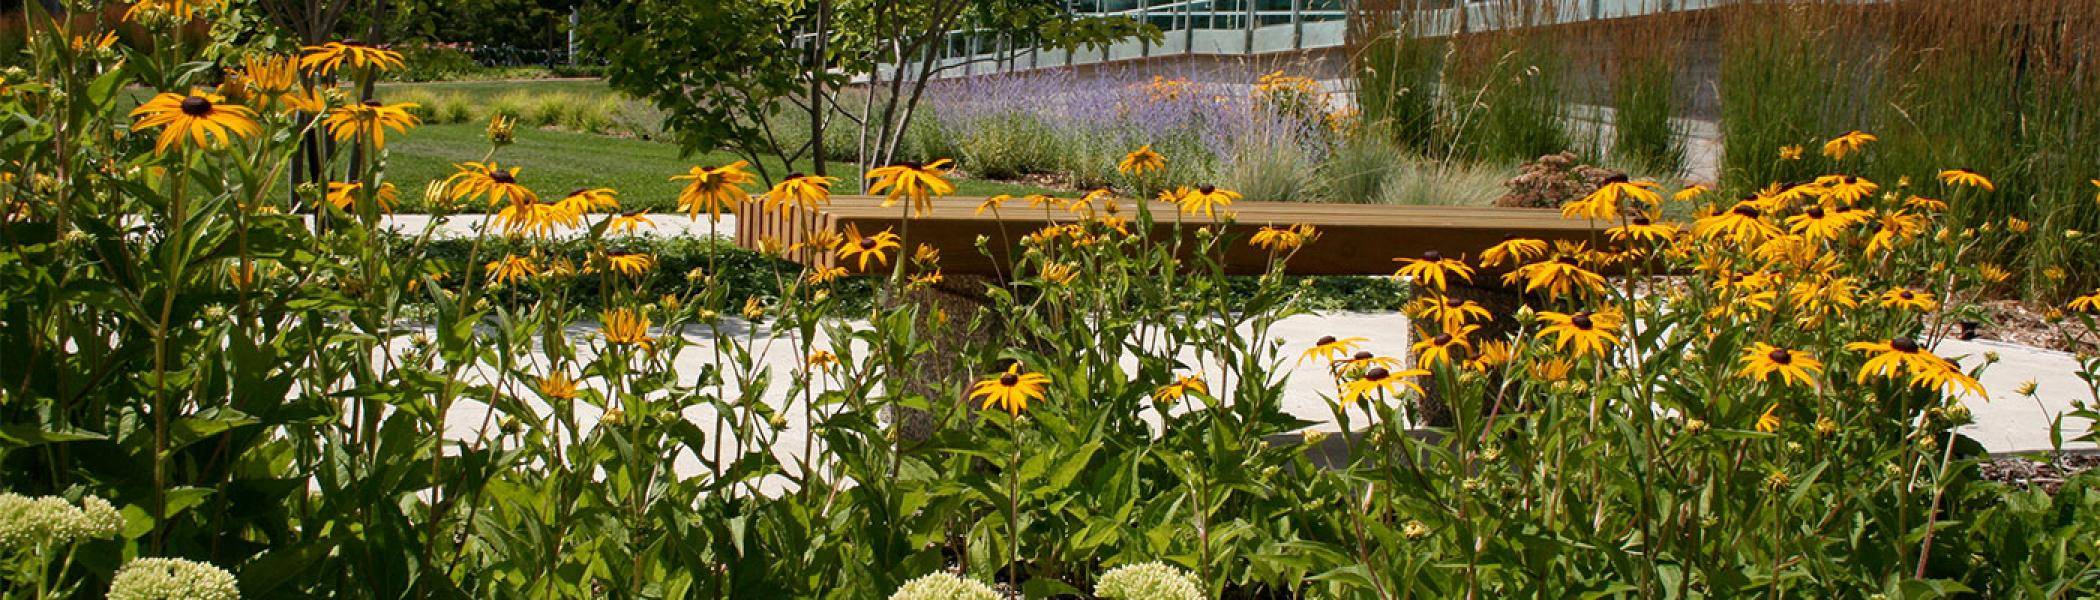 Flowers in bloom during summer months on Trent's Symons Campus